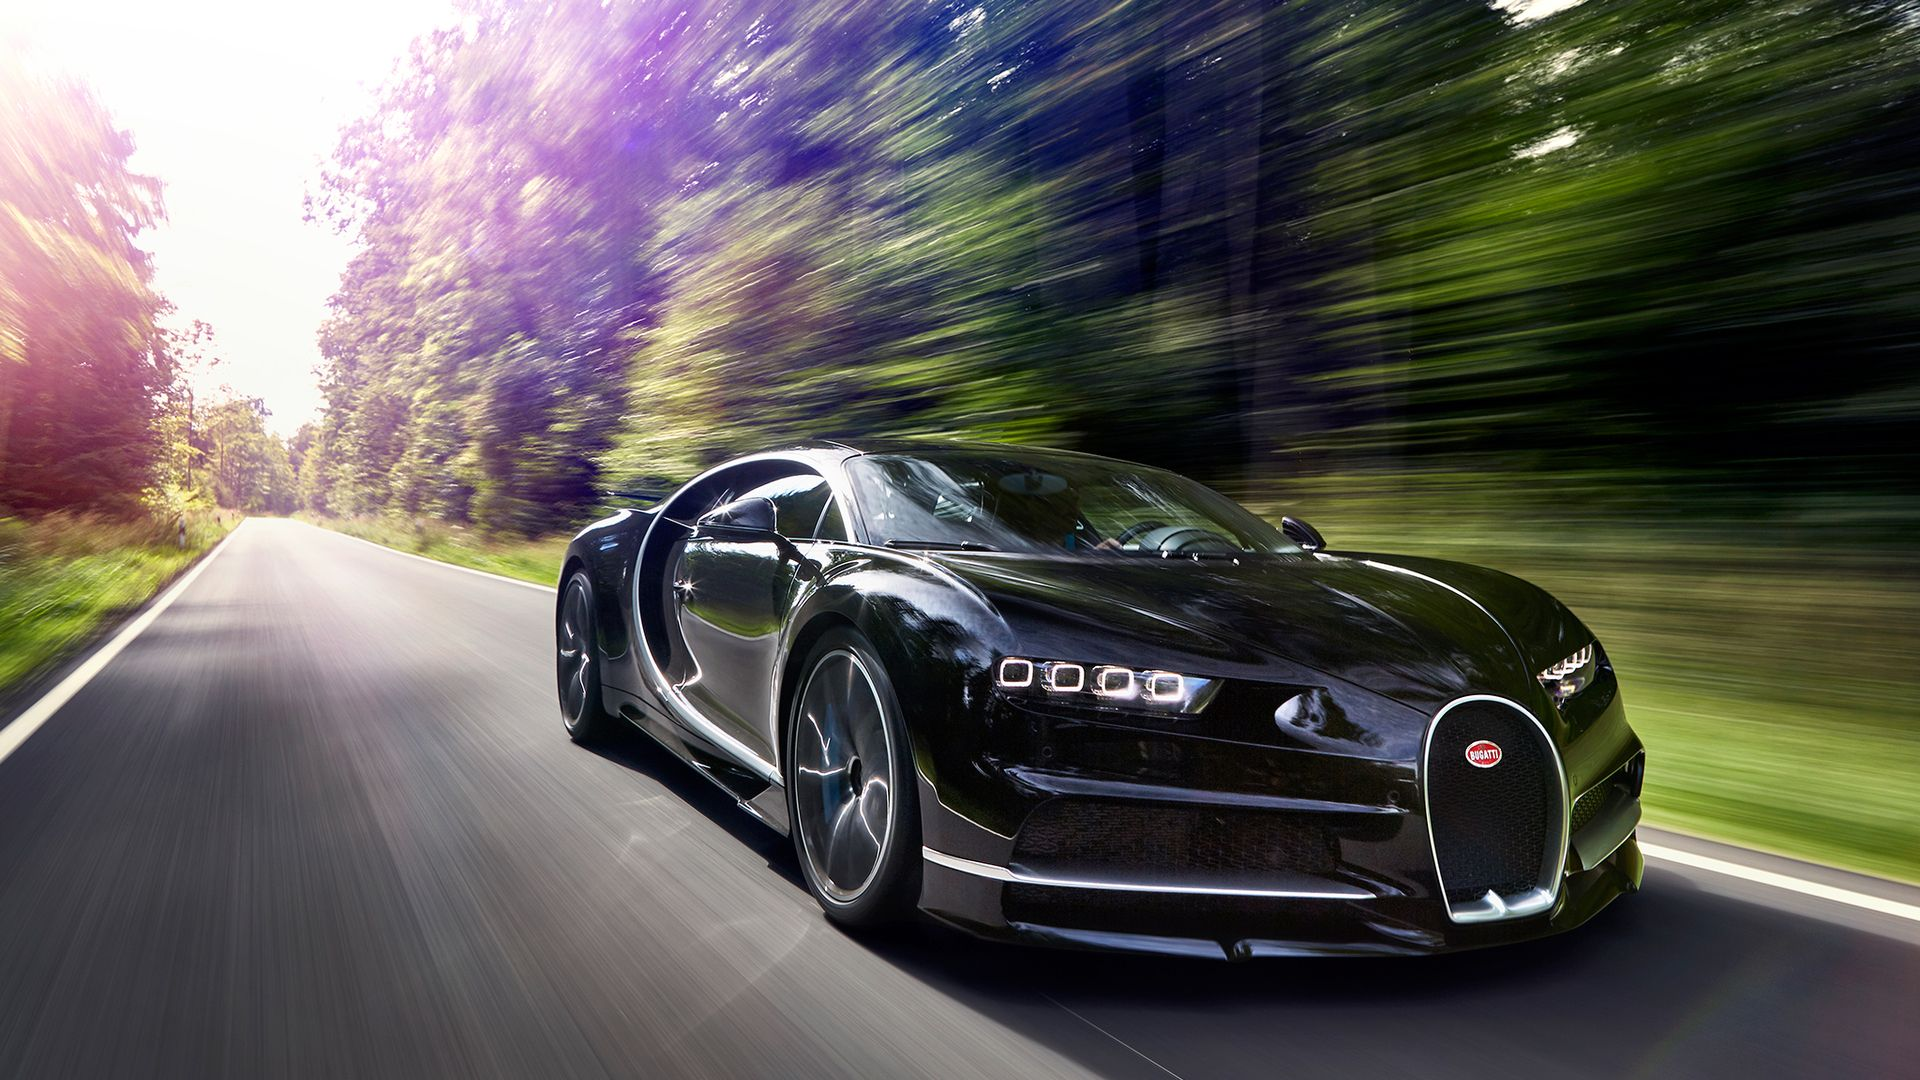 9ada975d455283f77af24fb9e22311aa Exciting Bugatti Veyron Zero to Sixty Cars Trend